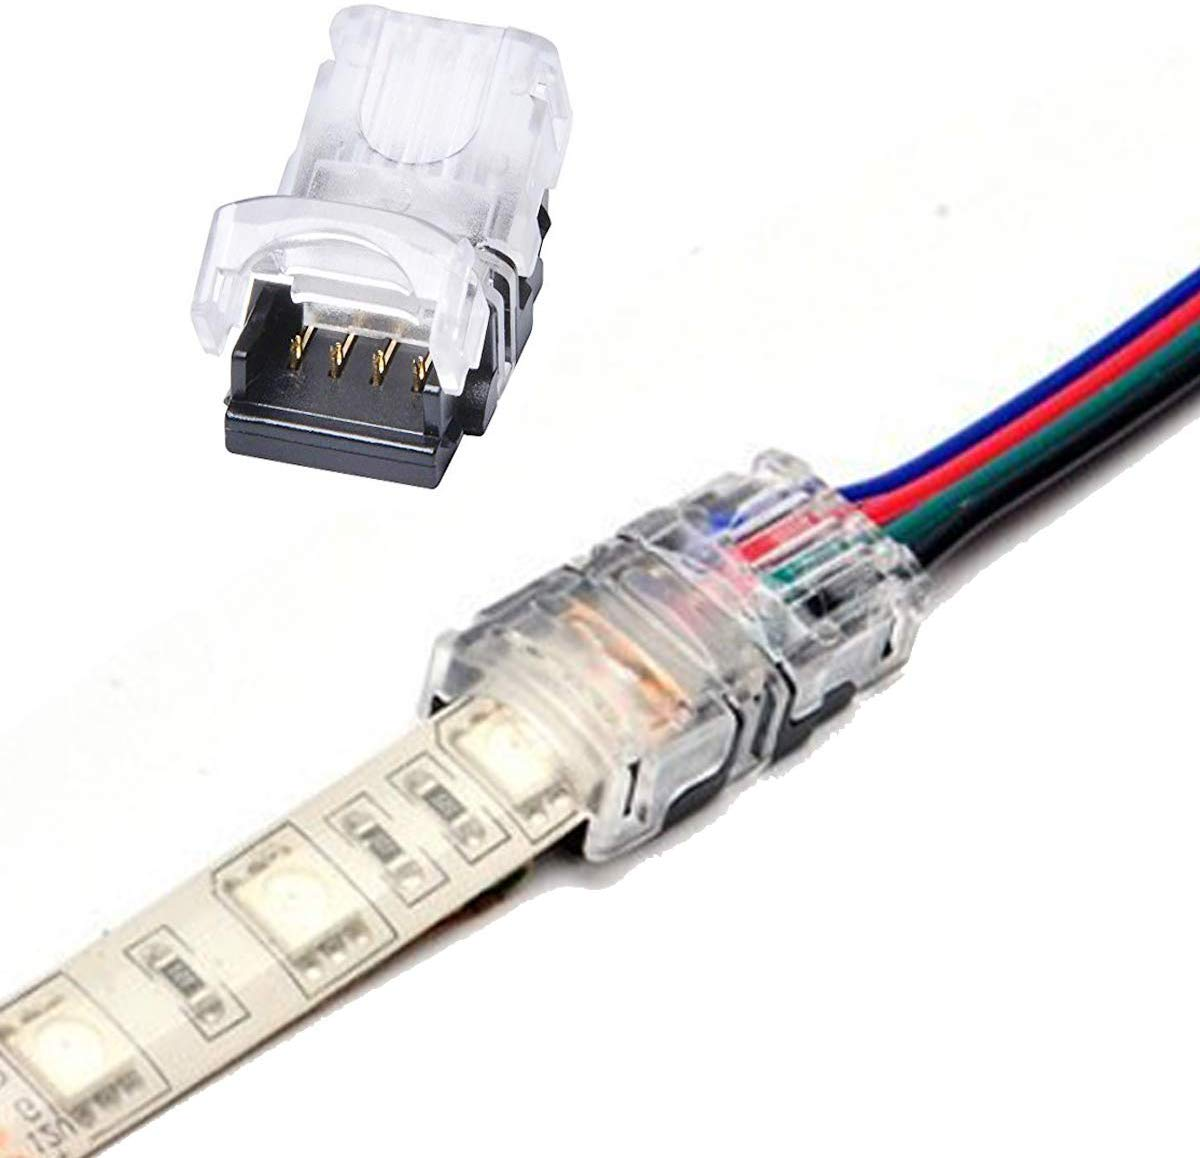 FluxTech 4-Pin RGB LED Strip to Wire Connector for 10mm Watreproof 5050 LED Strip Light